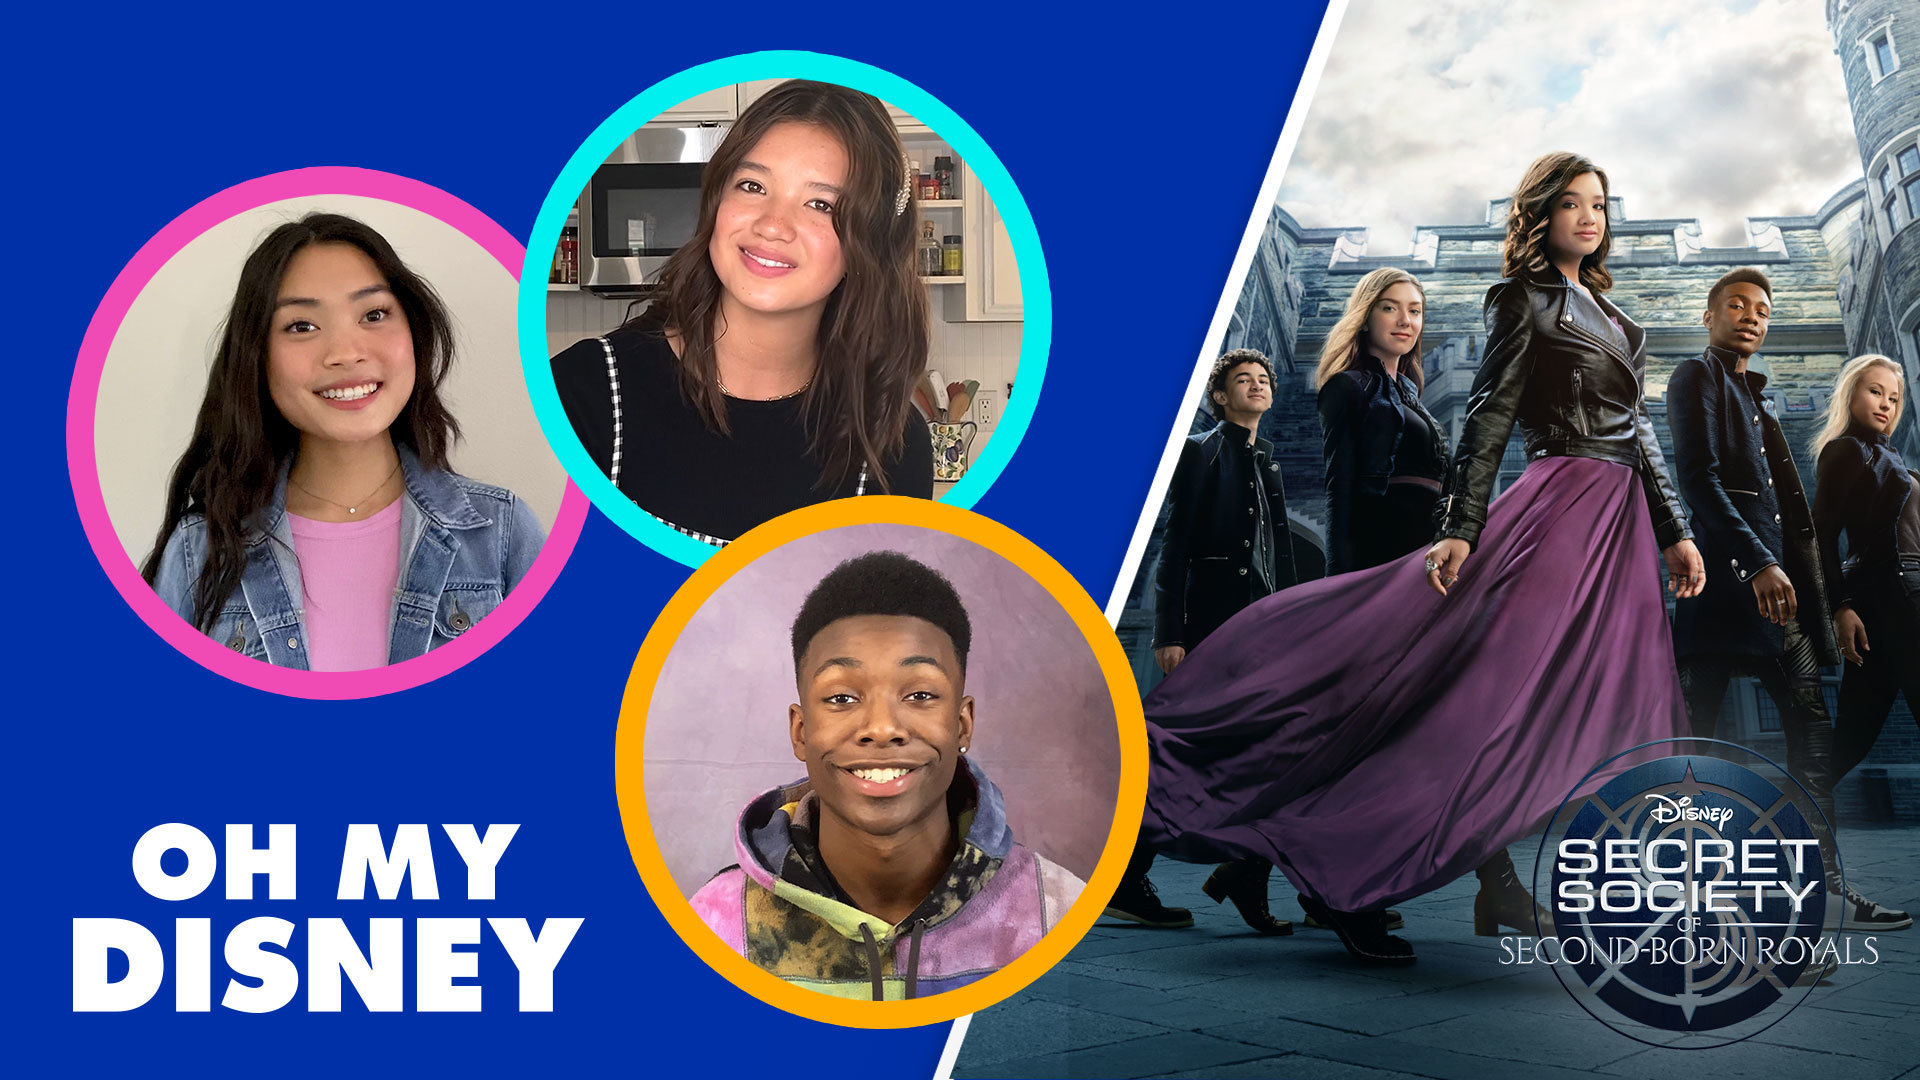 The Cast of Secret Society of Second-Born Royals Shares Their Hidden Talents | Oh My Disney